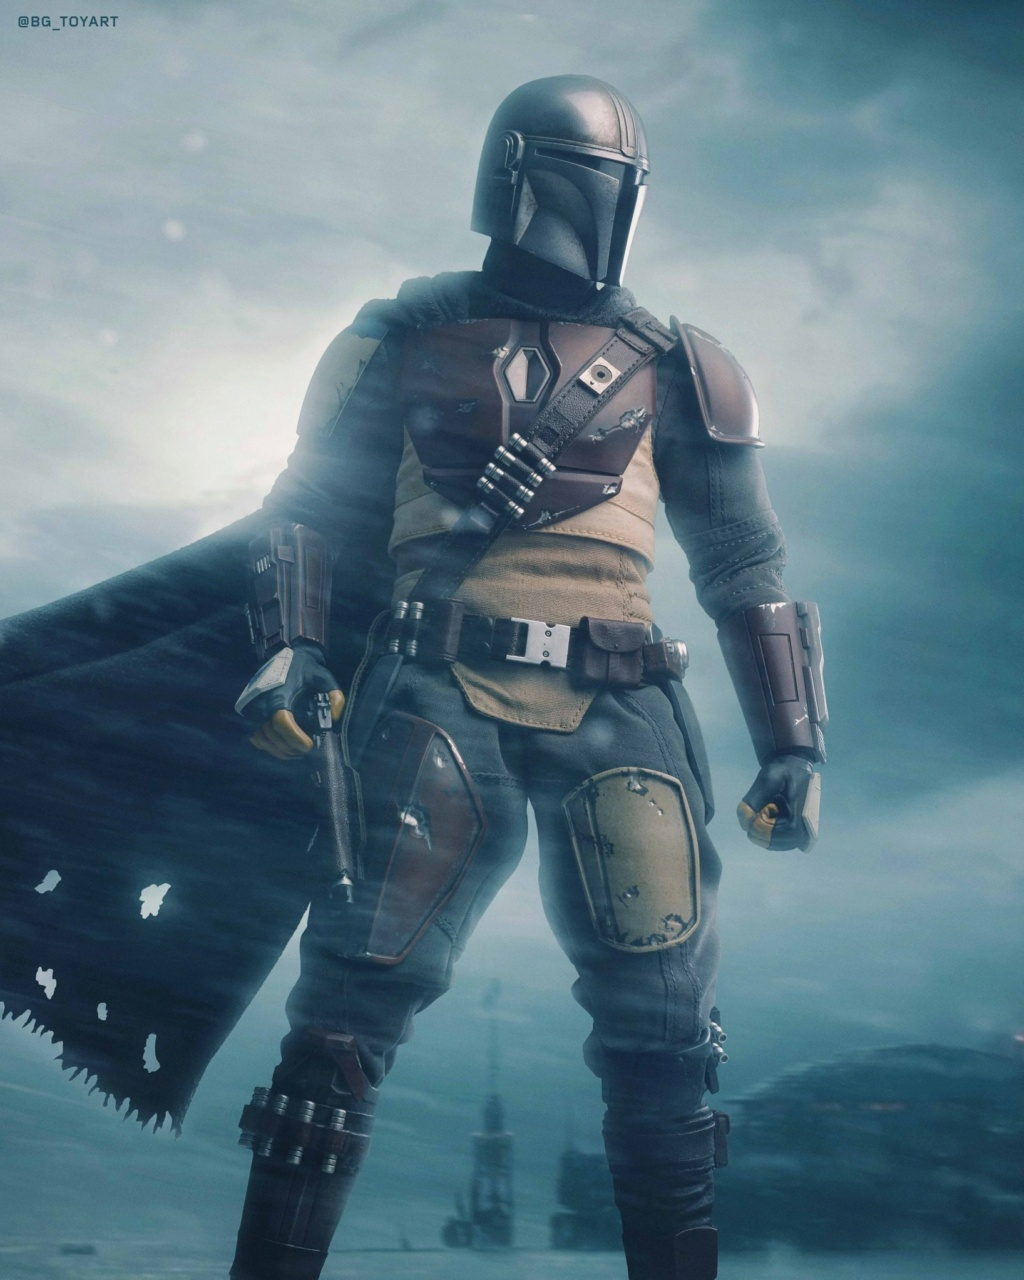 NEW PRODUCT: HOT TOYS: THE MANDALORIAN -- THE MANDALORIAN 1/6TH SCALE COLLECTIBLE FIGURE 13242